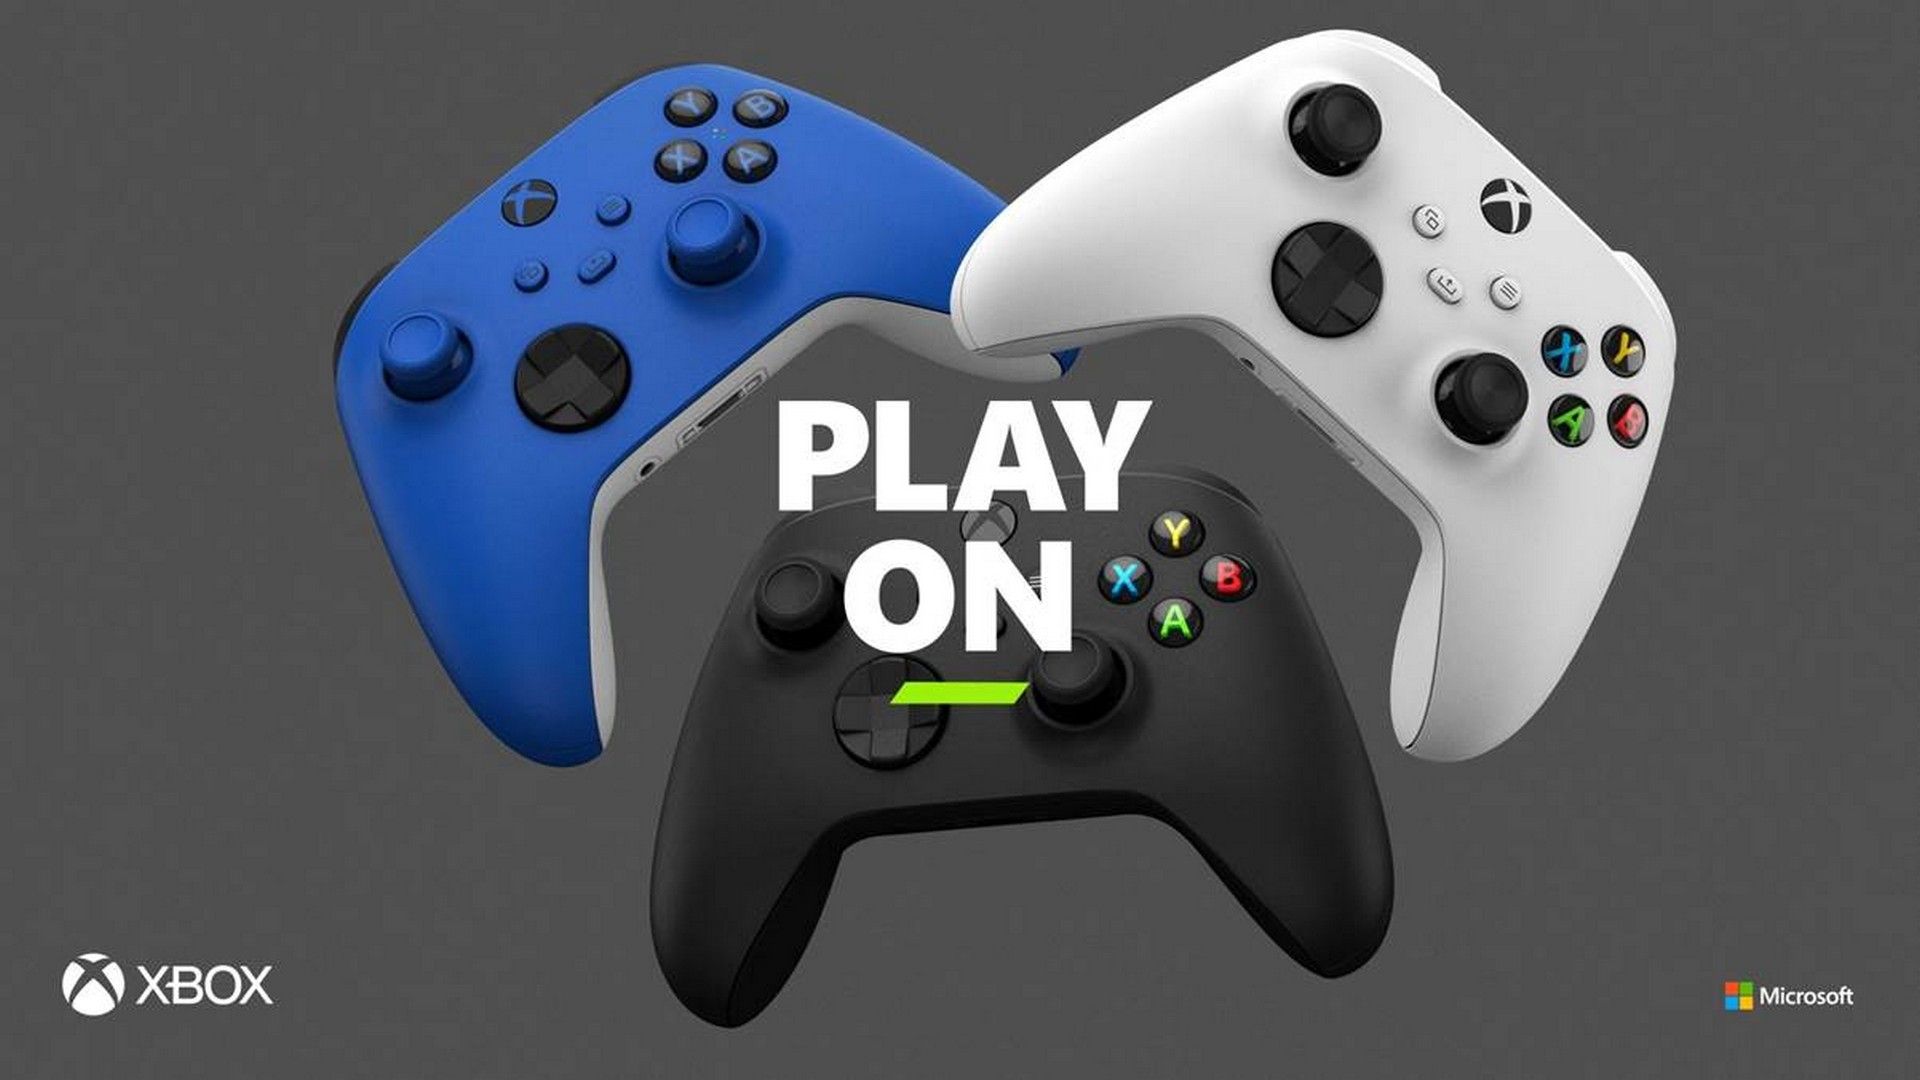 Xbox Introduces Launch Line-up of Next-Gen Xbox Accessories, Coming November 10